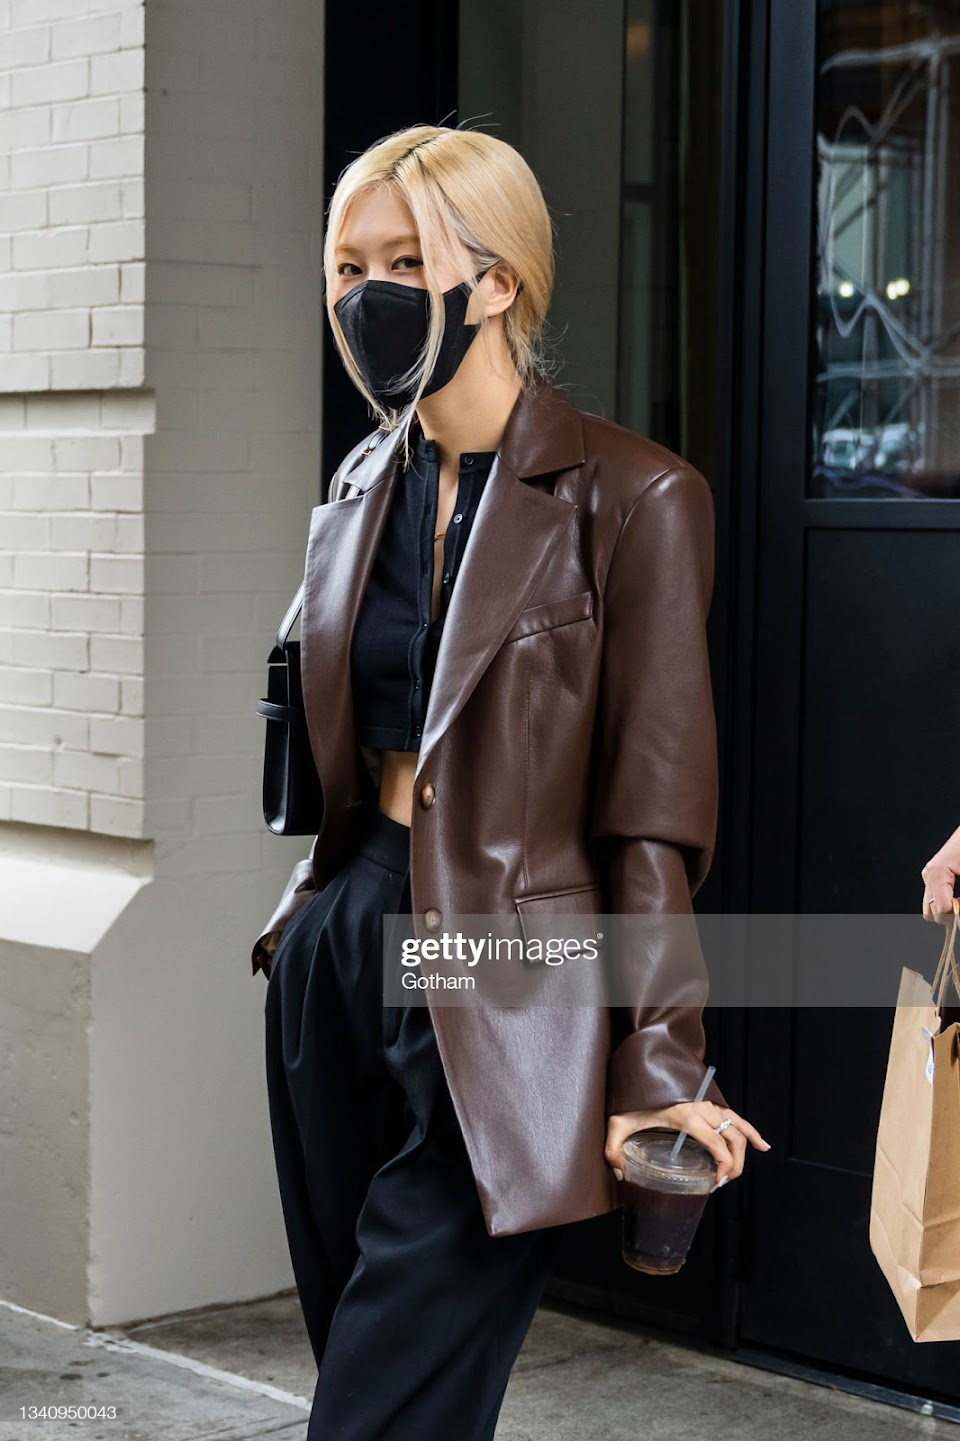 gettyimages-1340950043-2048x2048